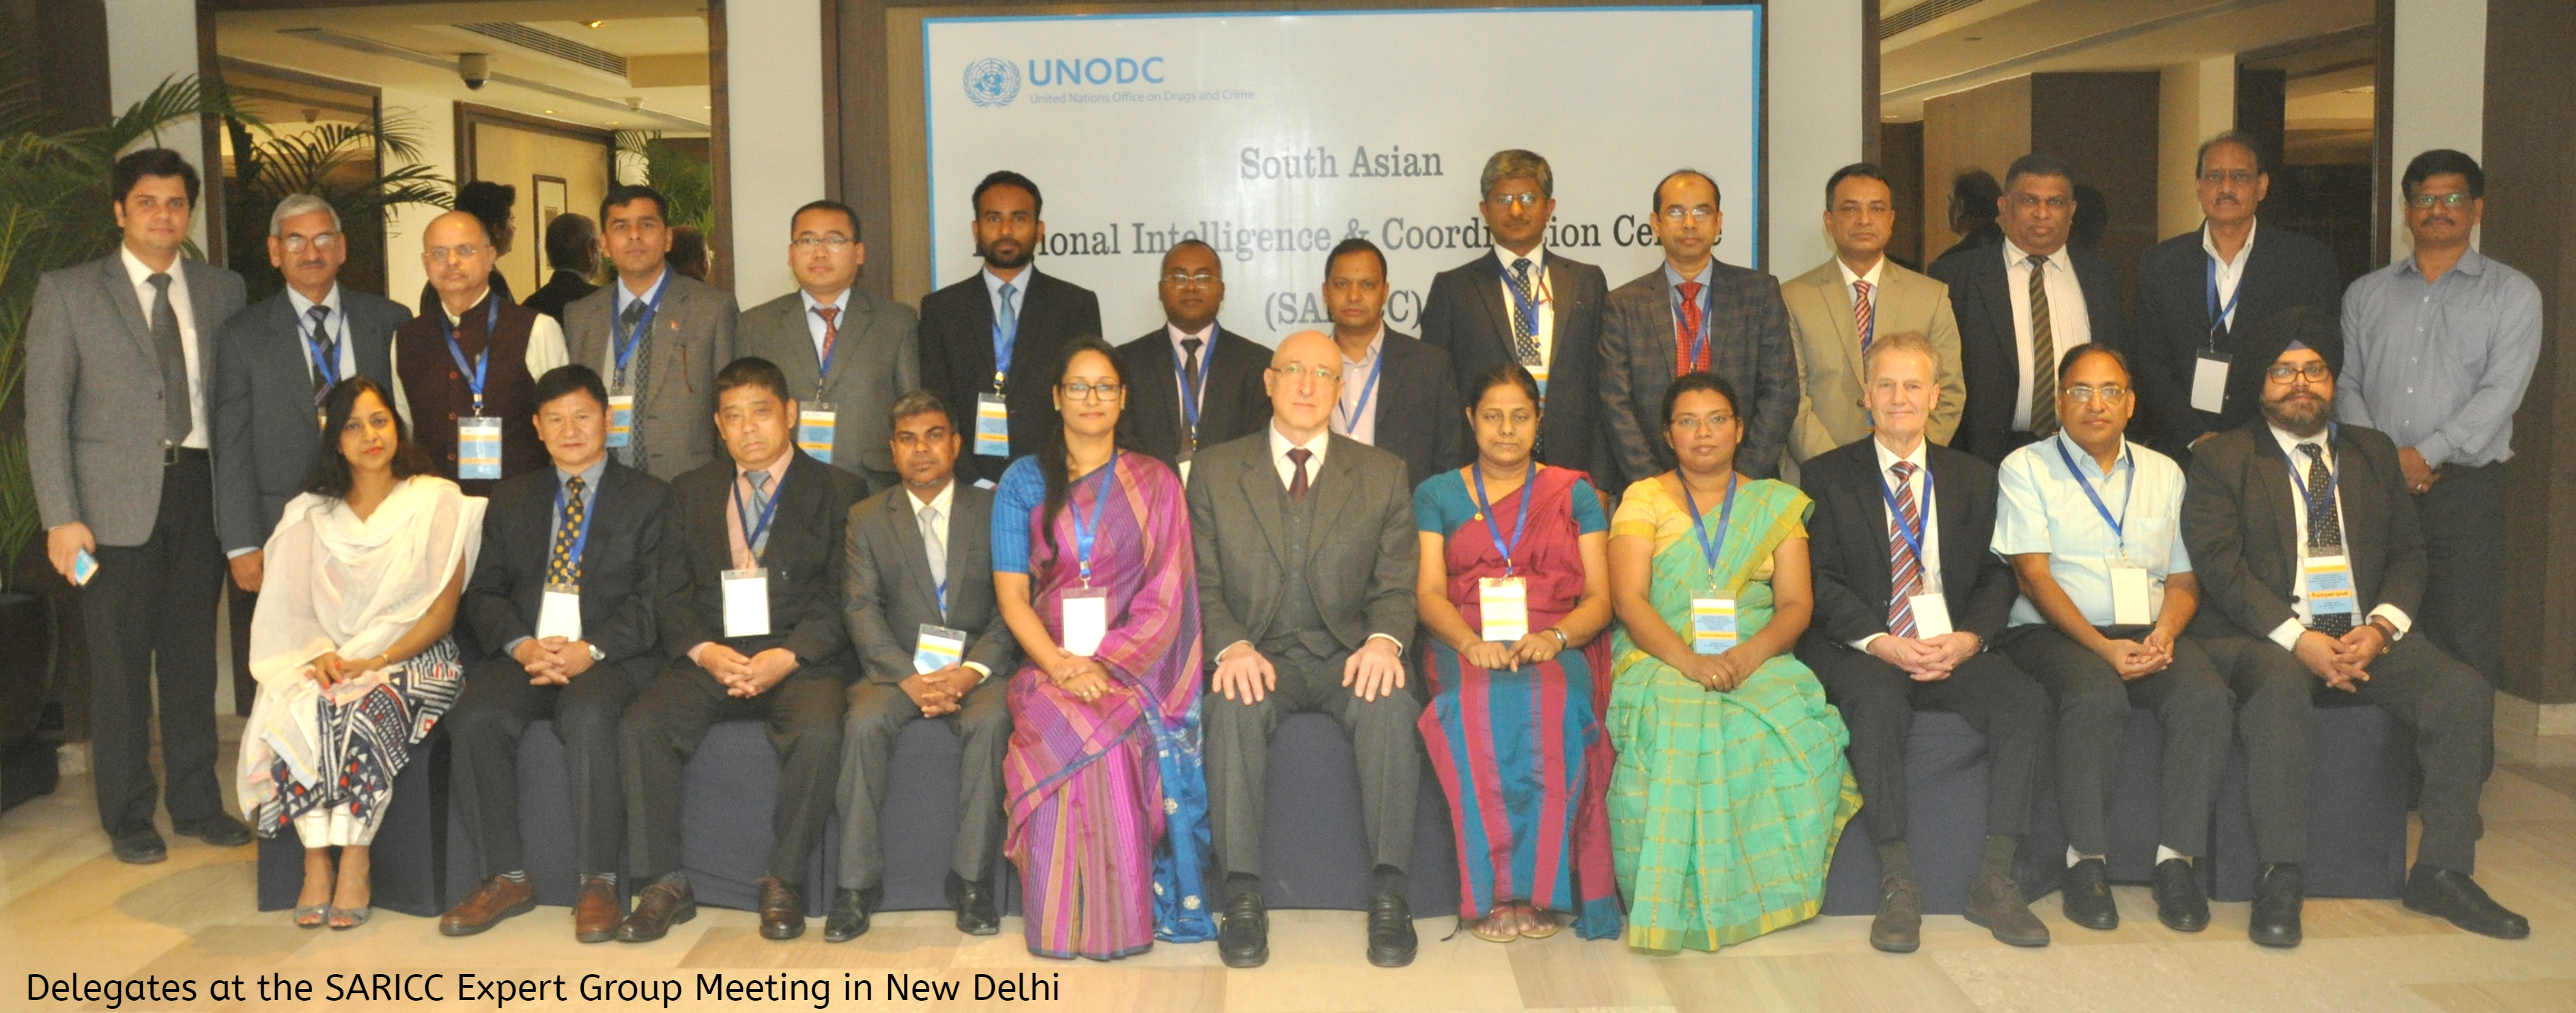 India: South Asian officials and experts extend support to